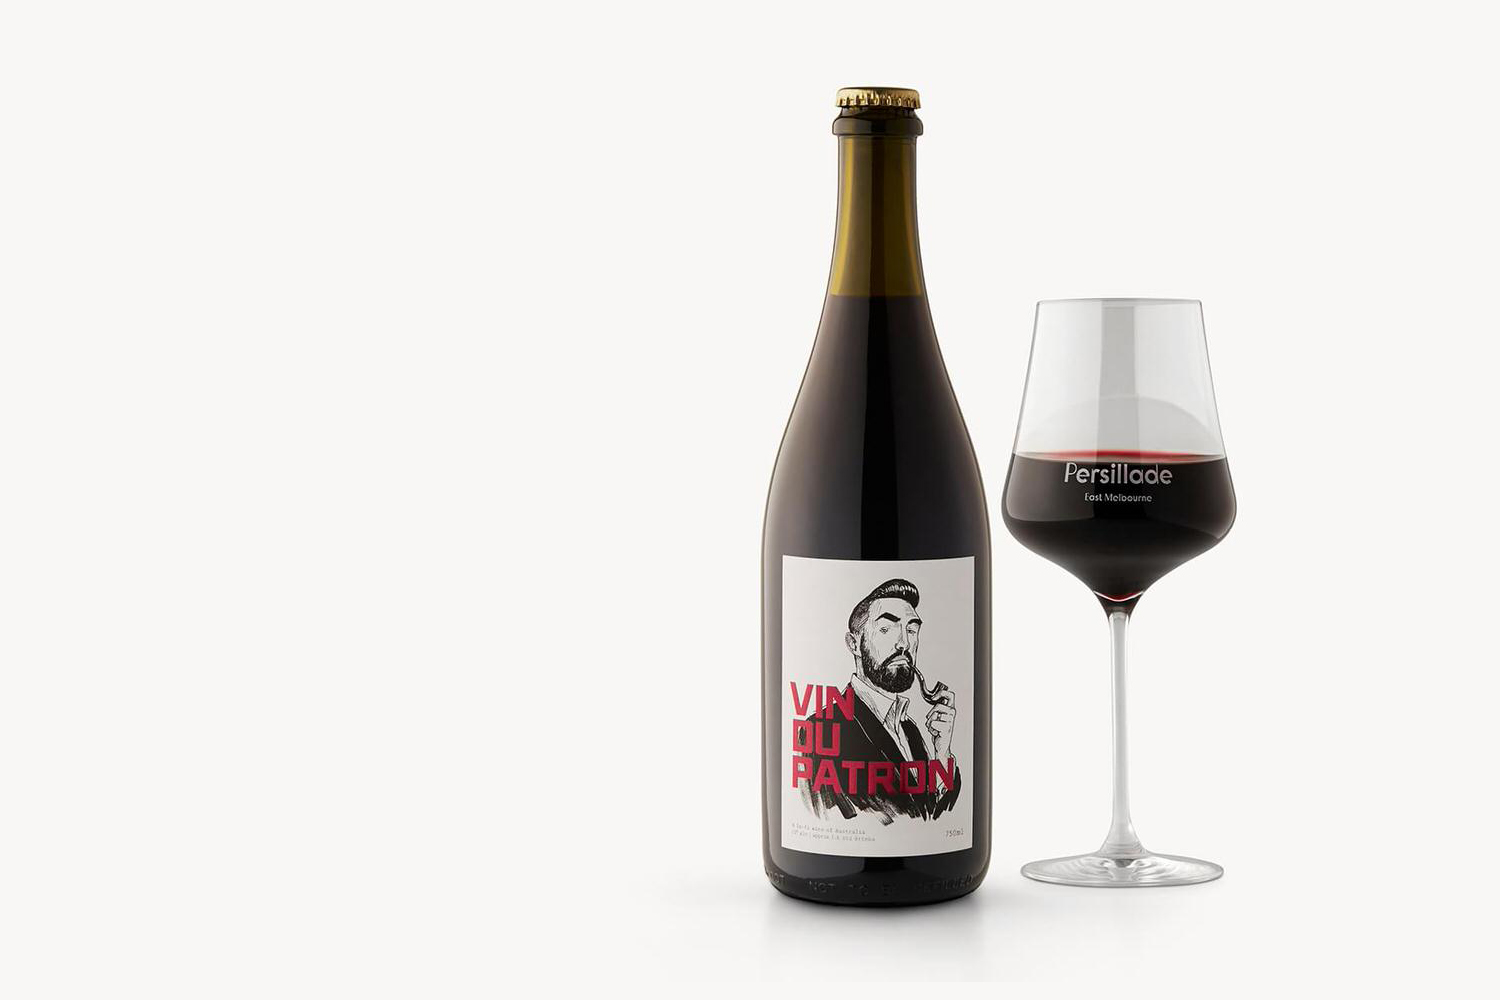 Wine bottle label designed by Clear Design with illustration by Oslo Davies for Melbourne cafe Persillade